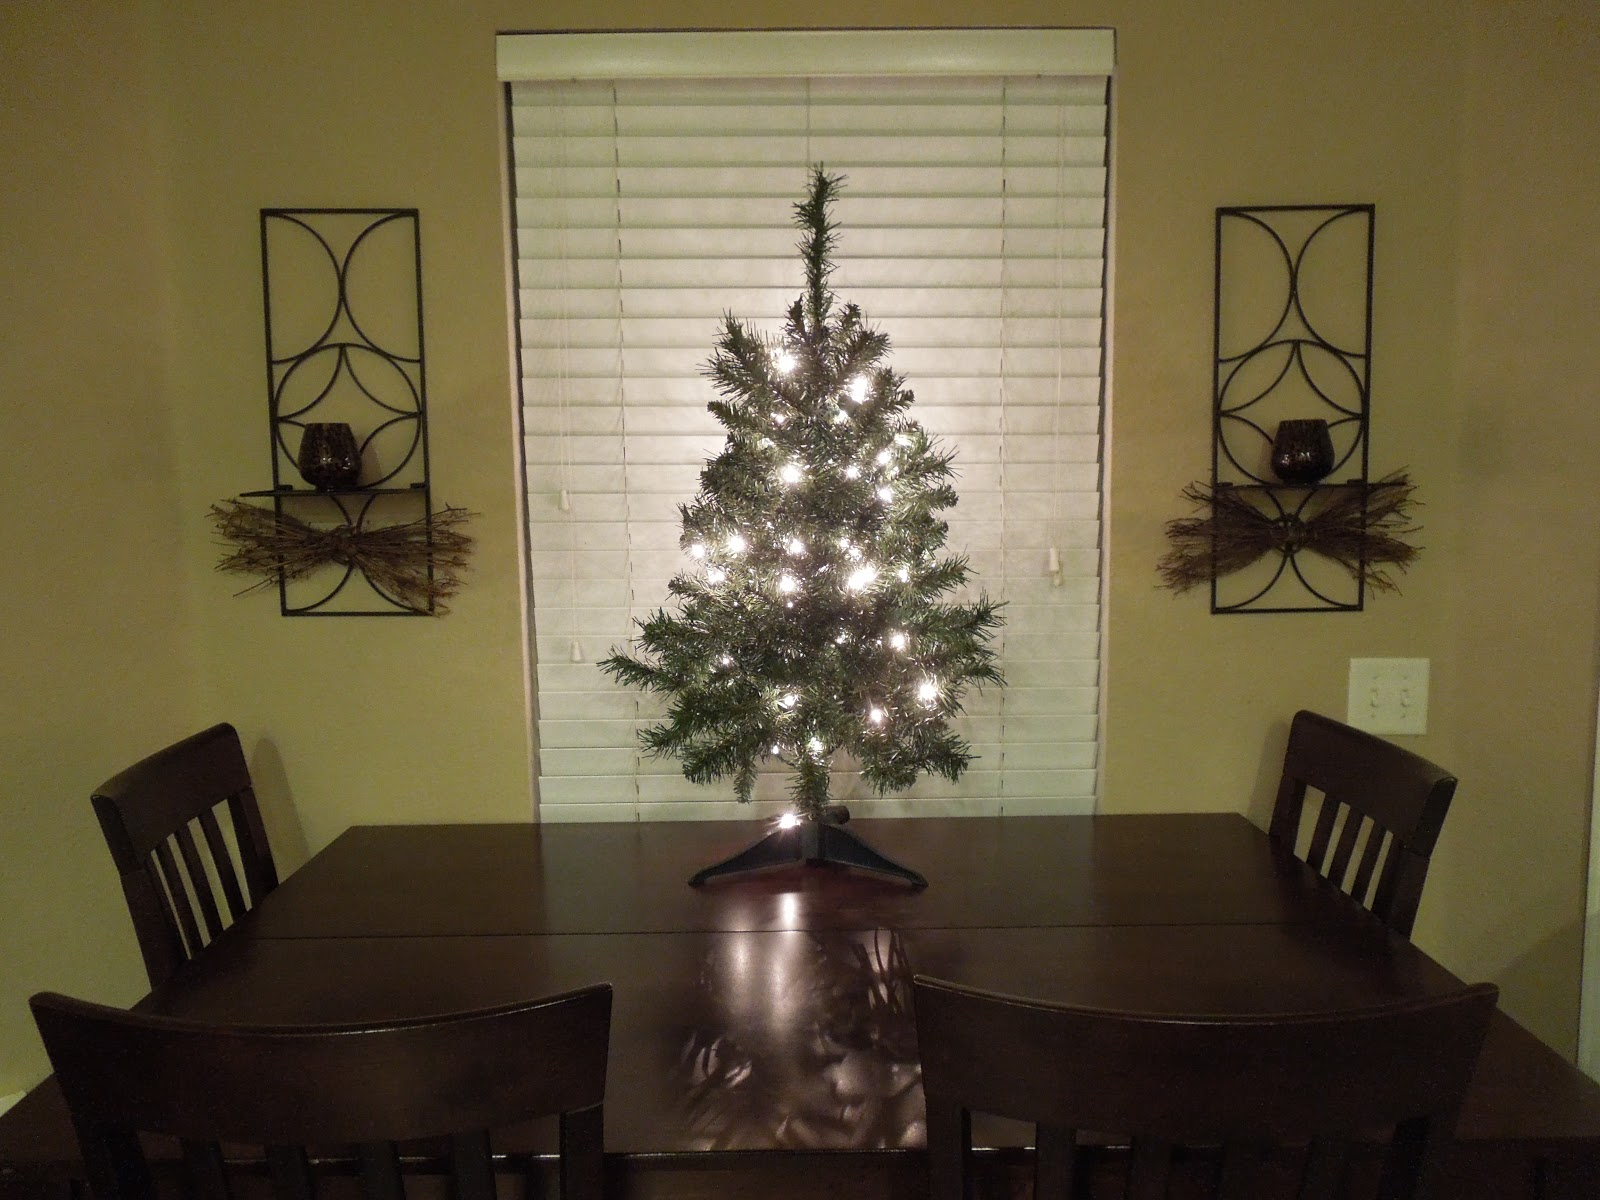 our christmas tree is now 3 feet tall and on top of our breakfast table no worries about ornaments breaking or a tree falling over